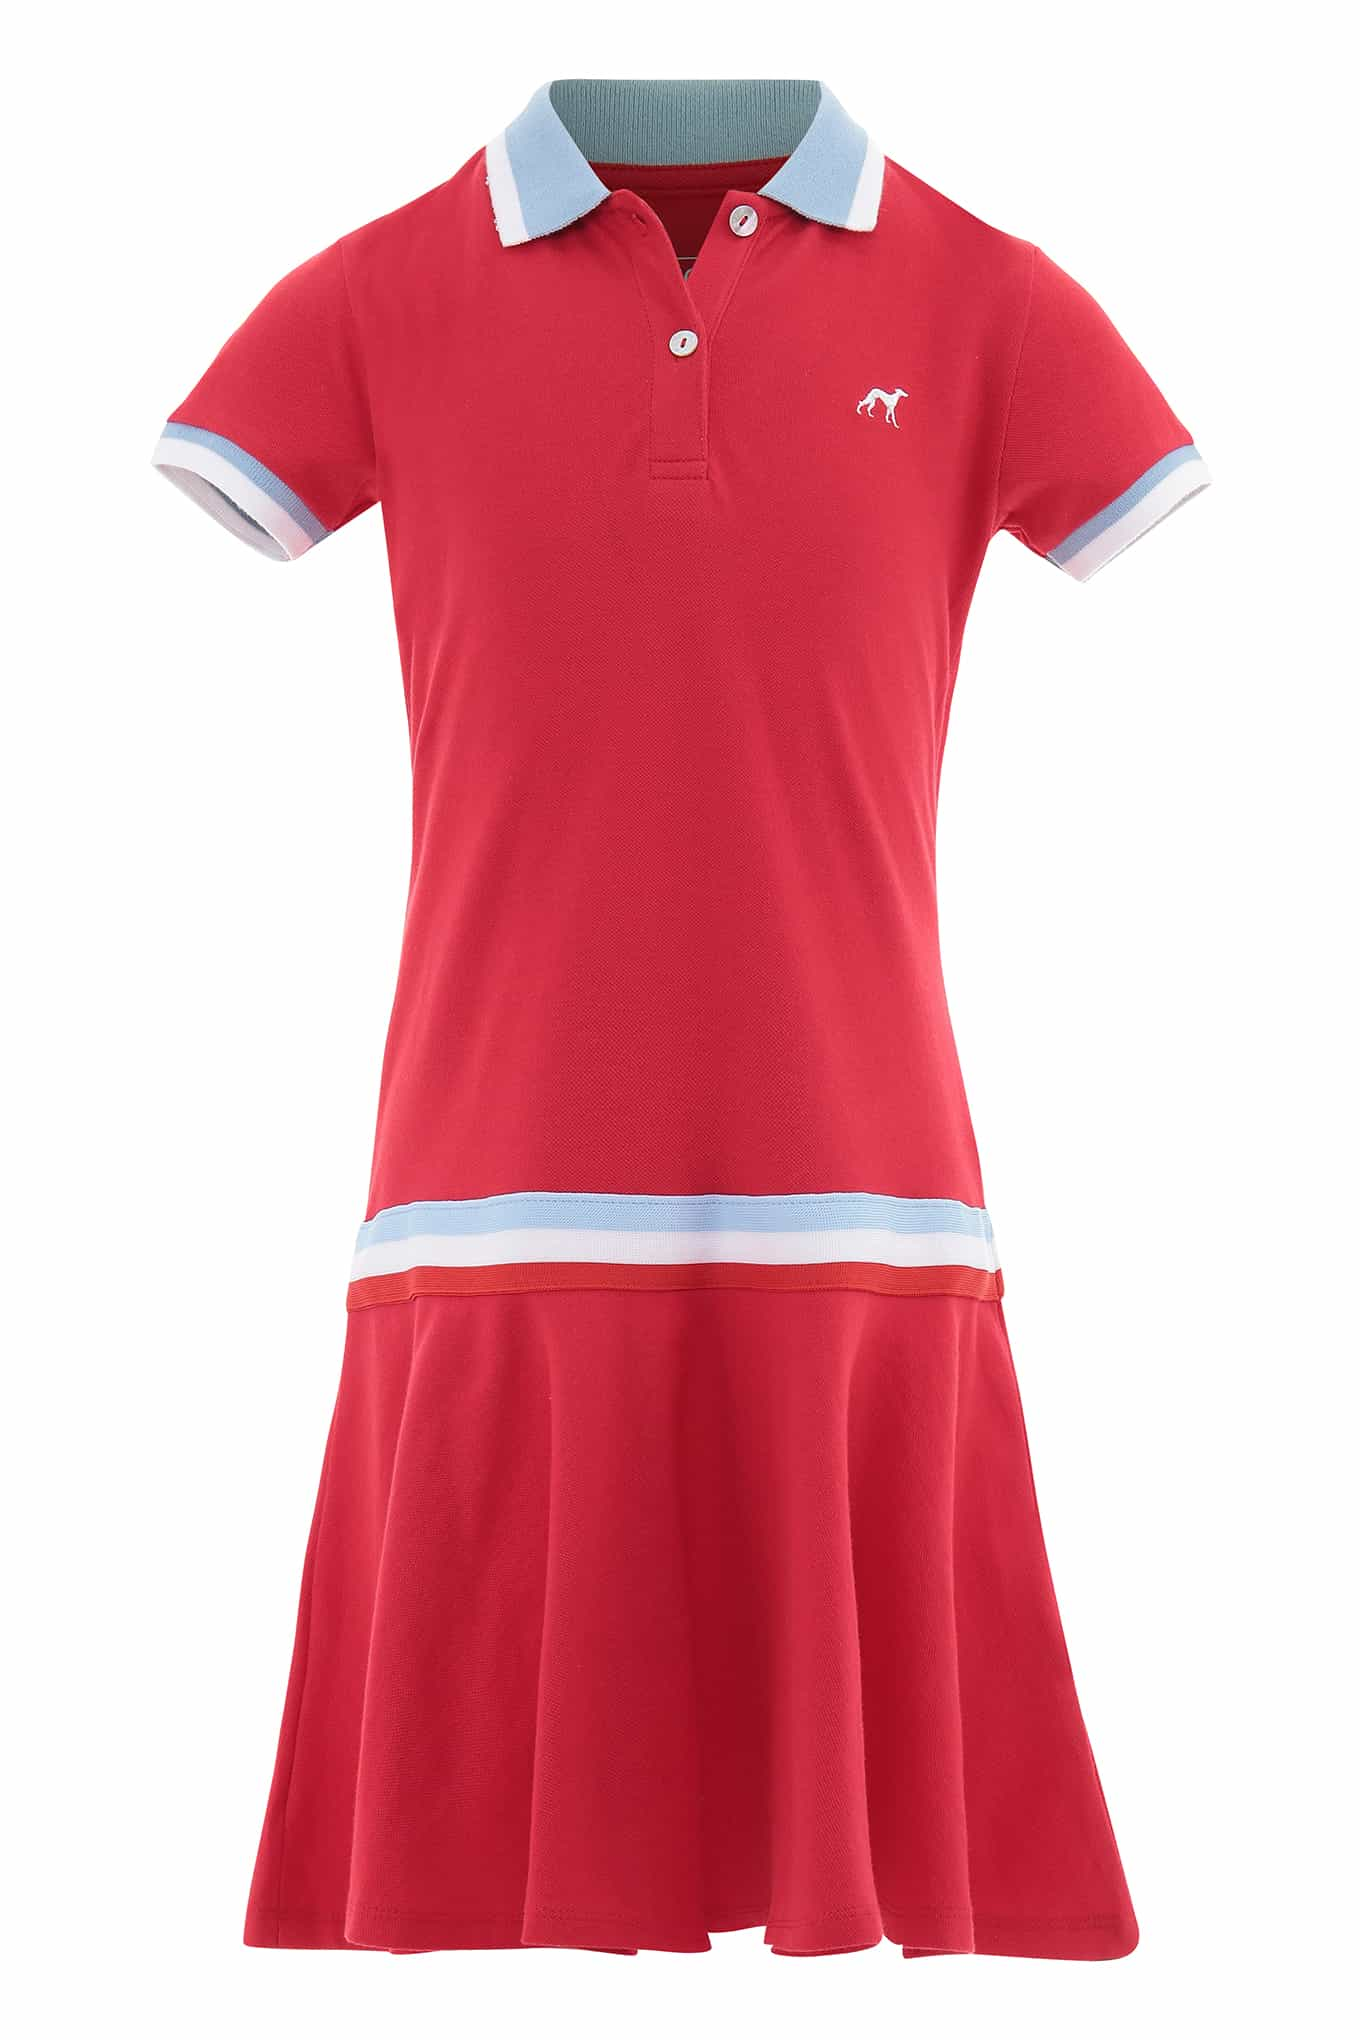 Dress Piquet Red Sport Girl